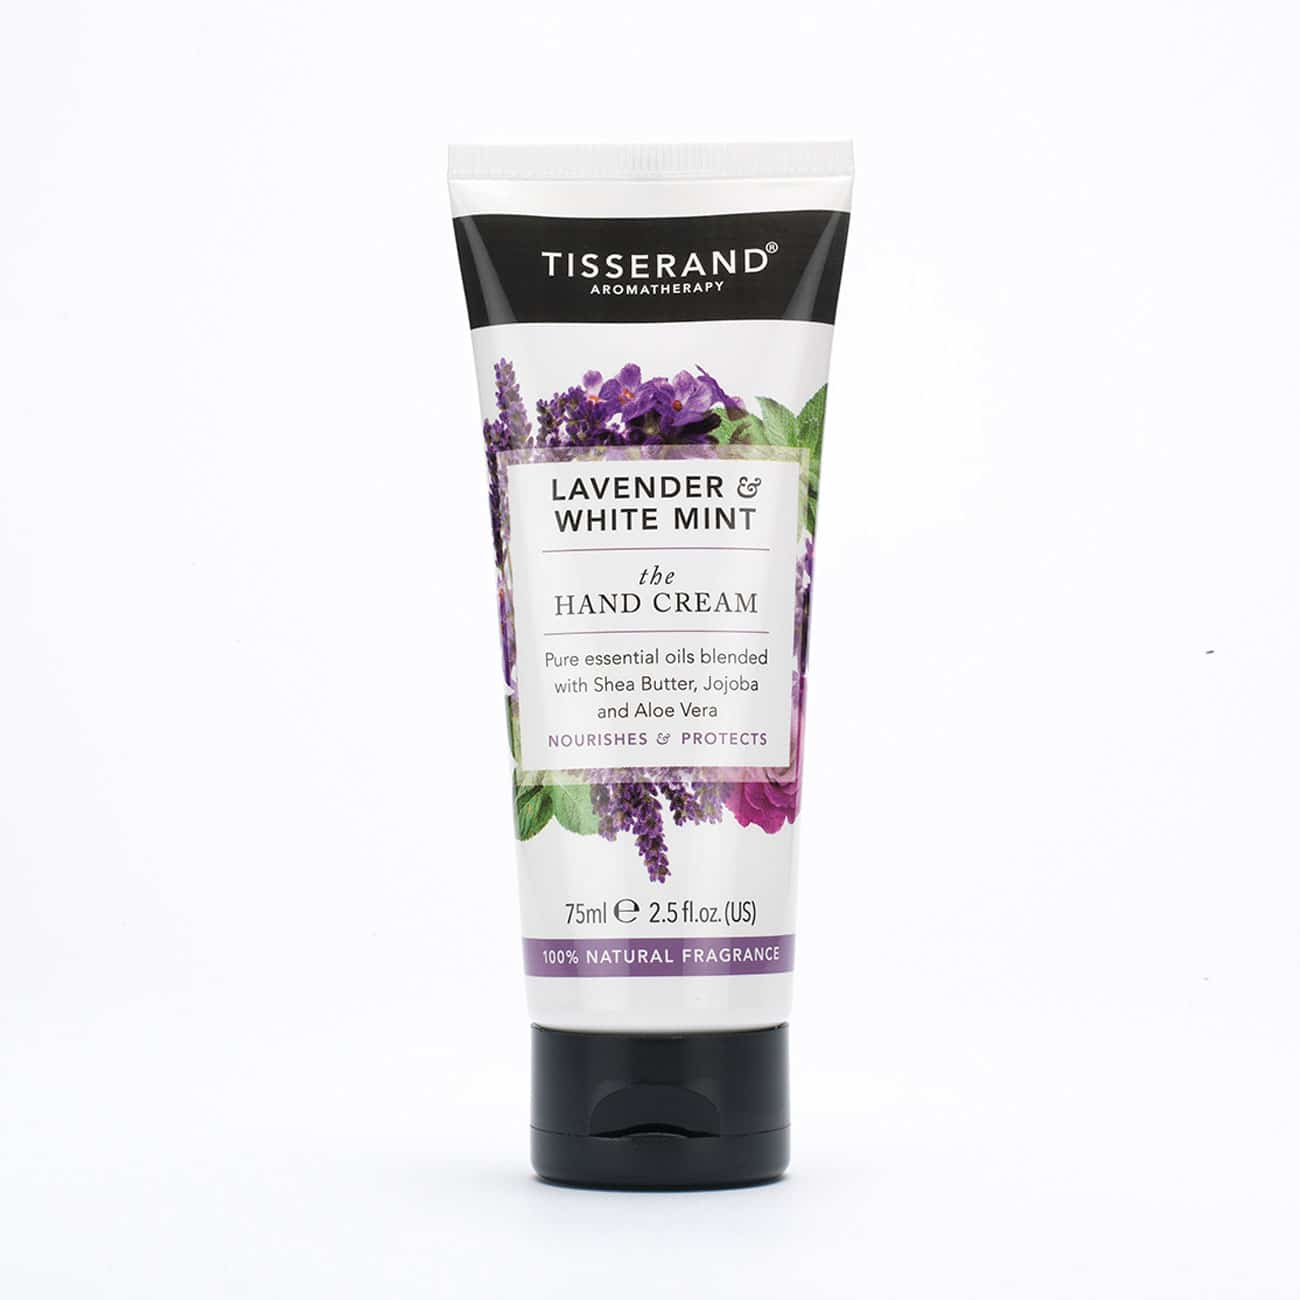 Tisserand-Aromatherapy-Lavender-and-White-Mint-Hand-Cream